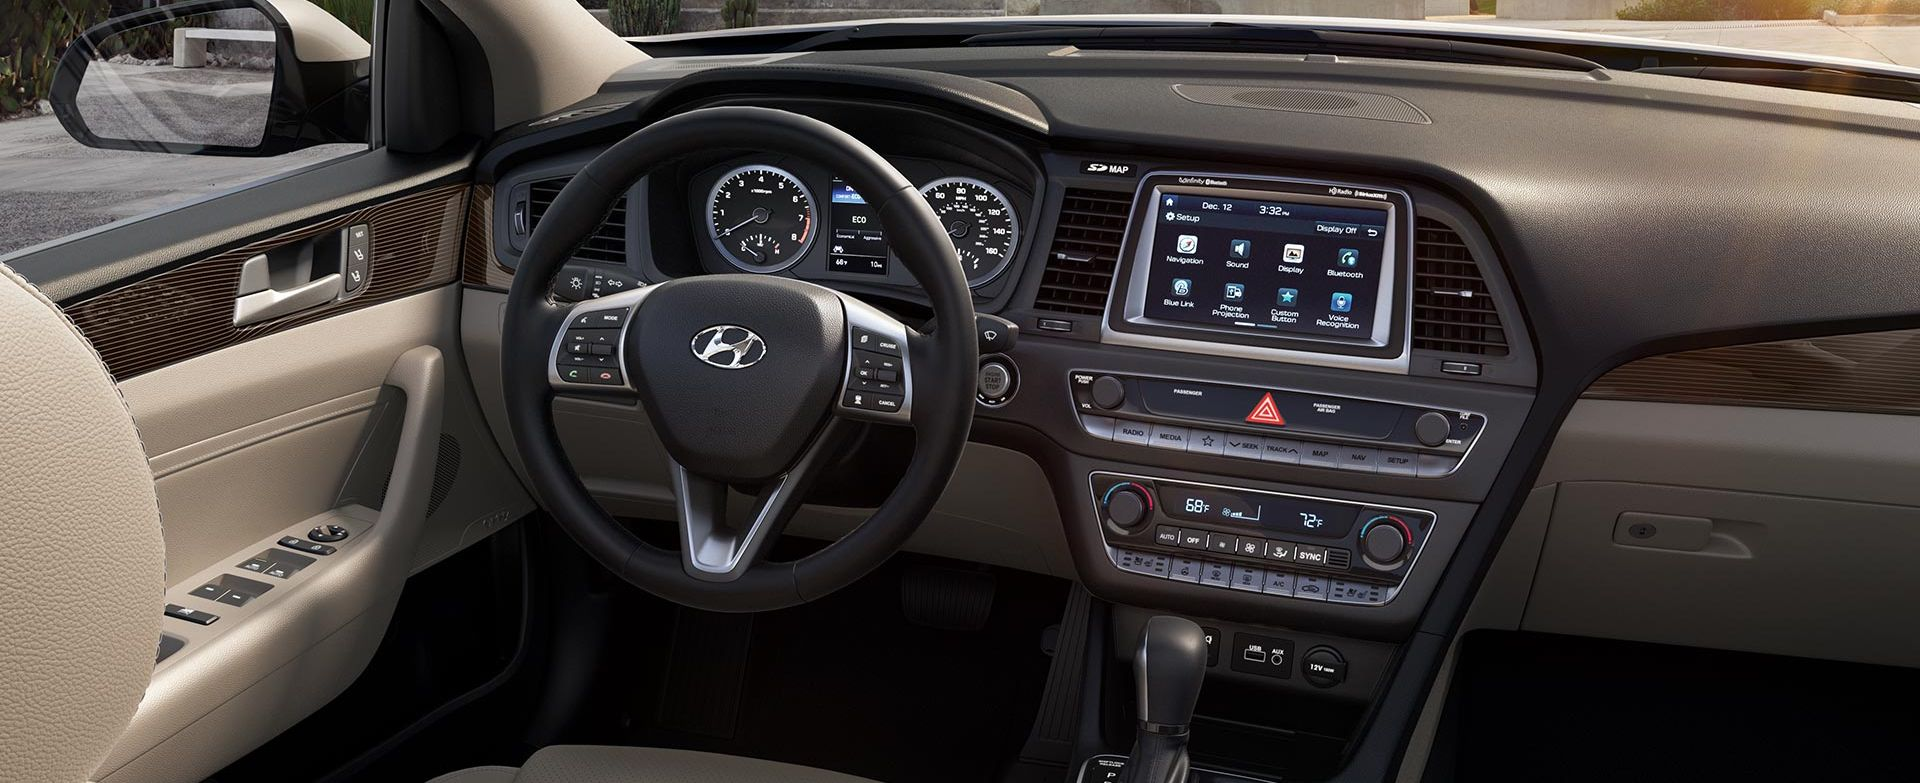 Cozy Interior of the 2018 Hyundai Sonata